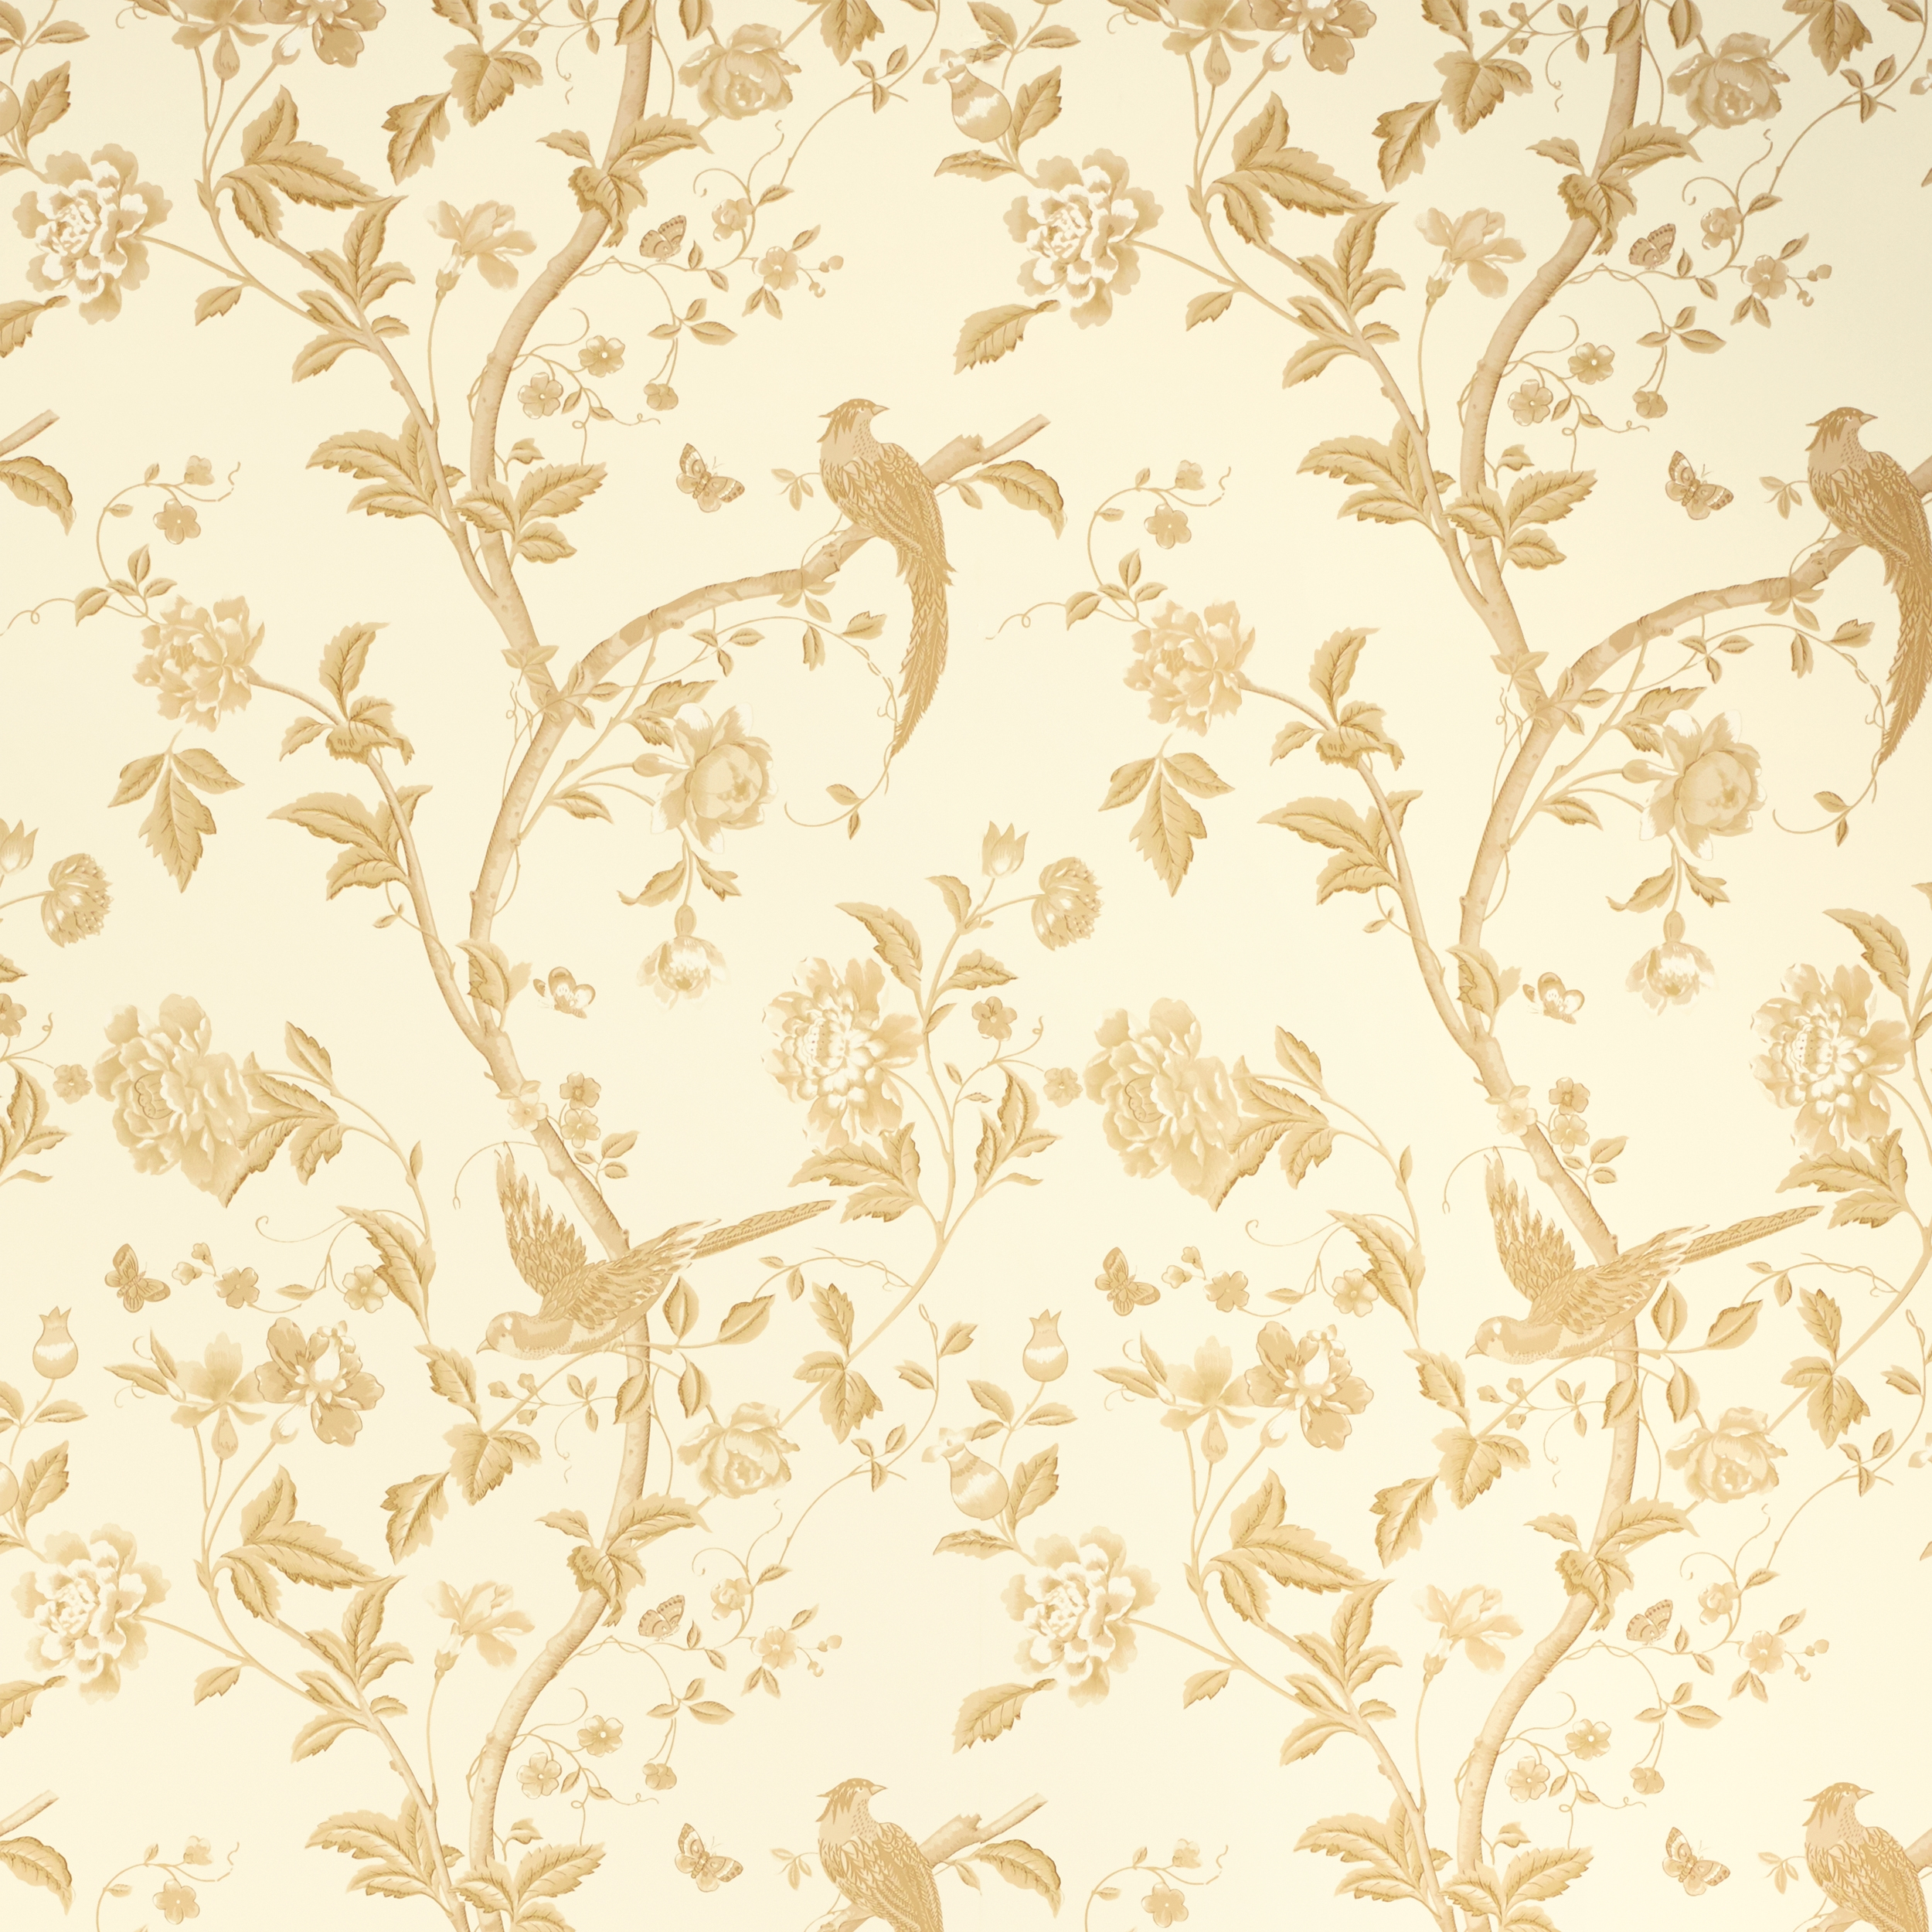 50 Summer Palace Wallpaper on WallpaperSafari